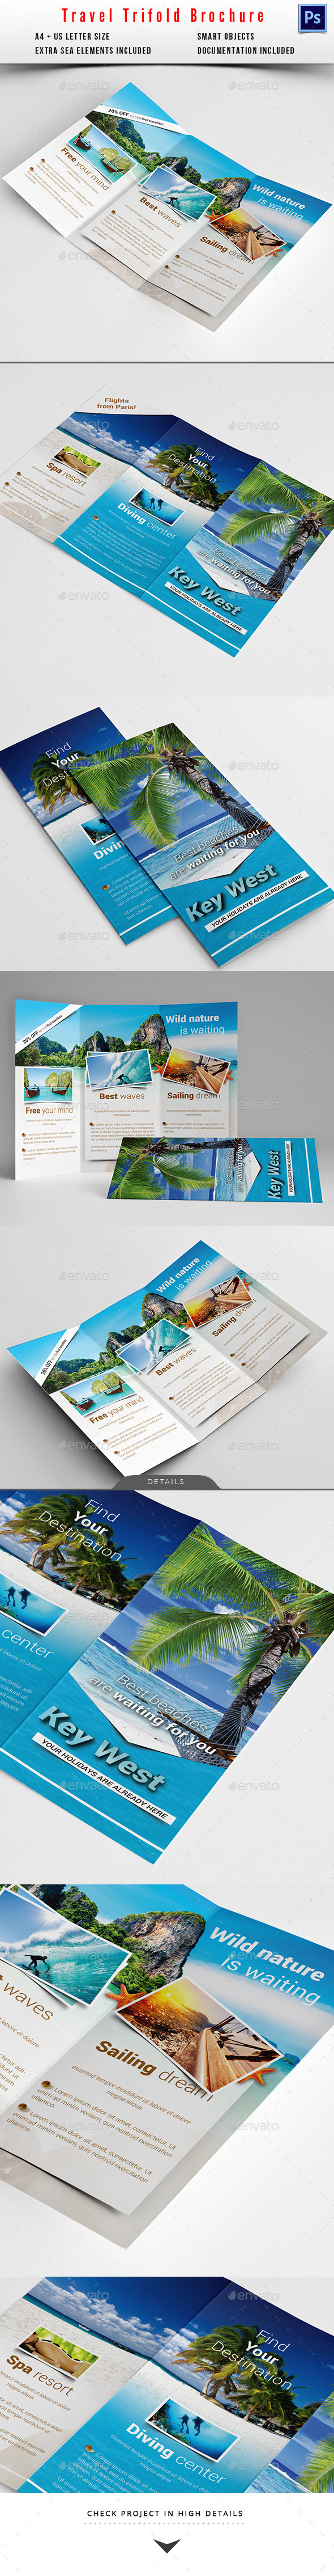 Travel / Holiday Trifold Brochure - Informational Brochures